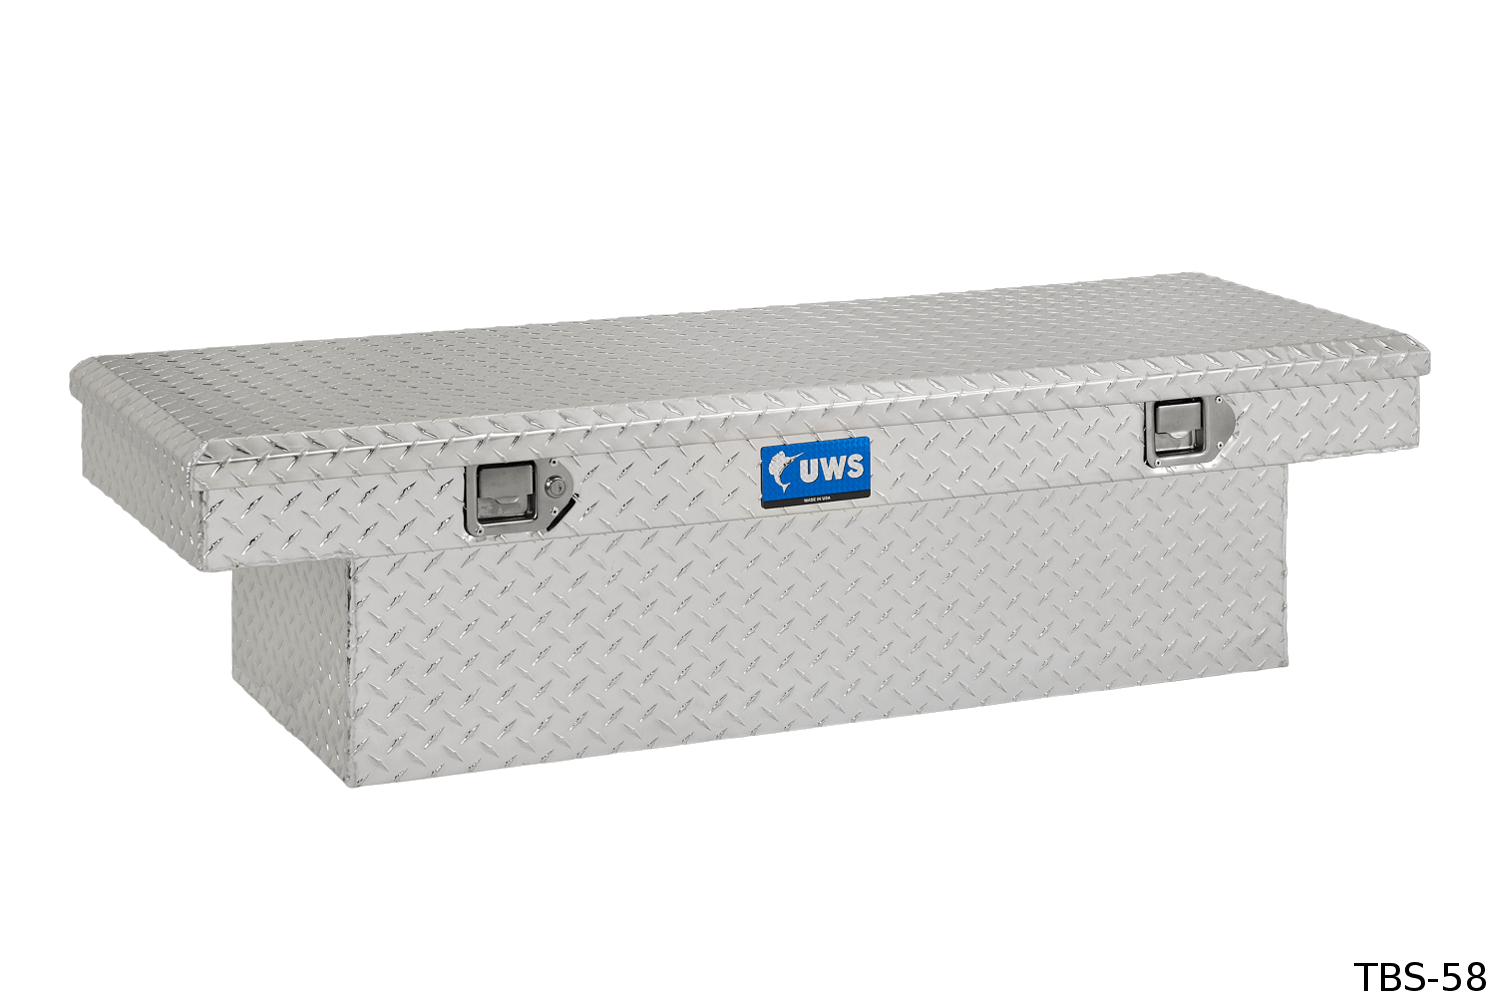 UWS Crossover Tool Boxes tbs-58 UWS Crossover ToolBoxes